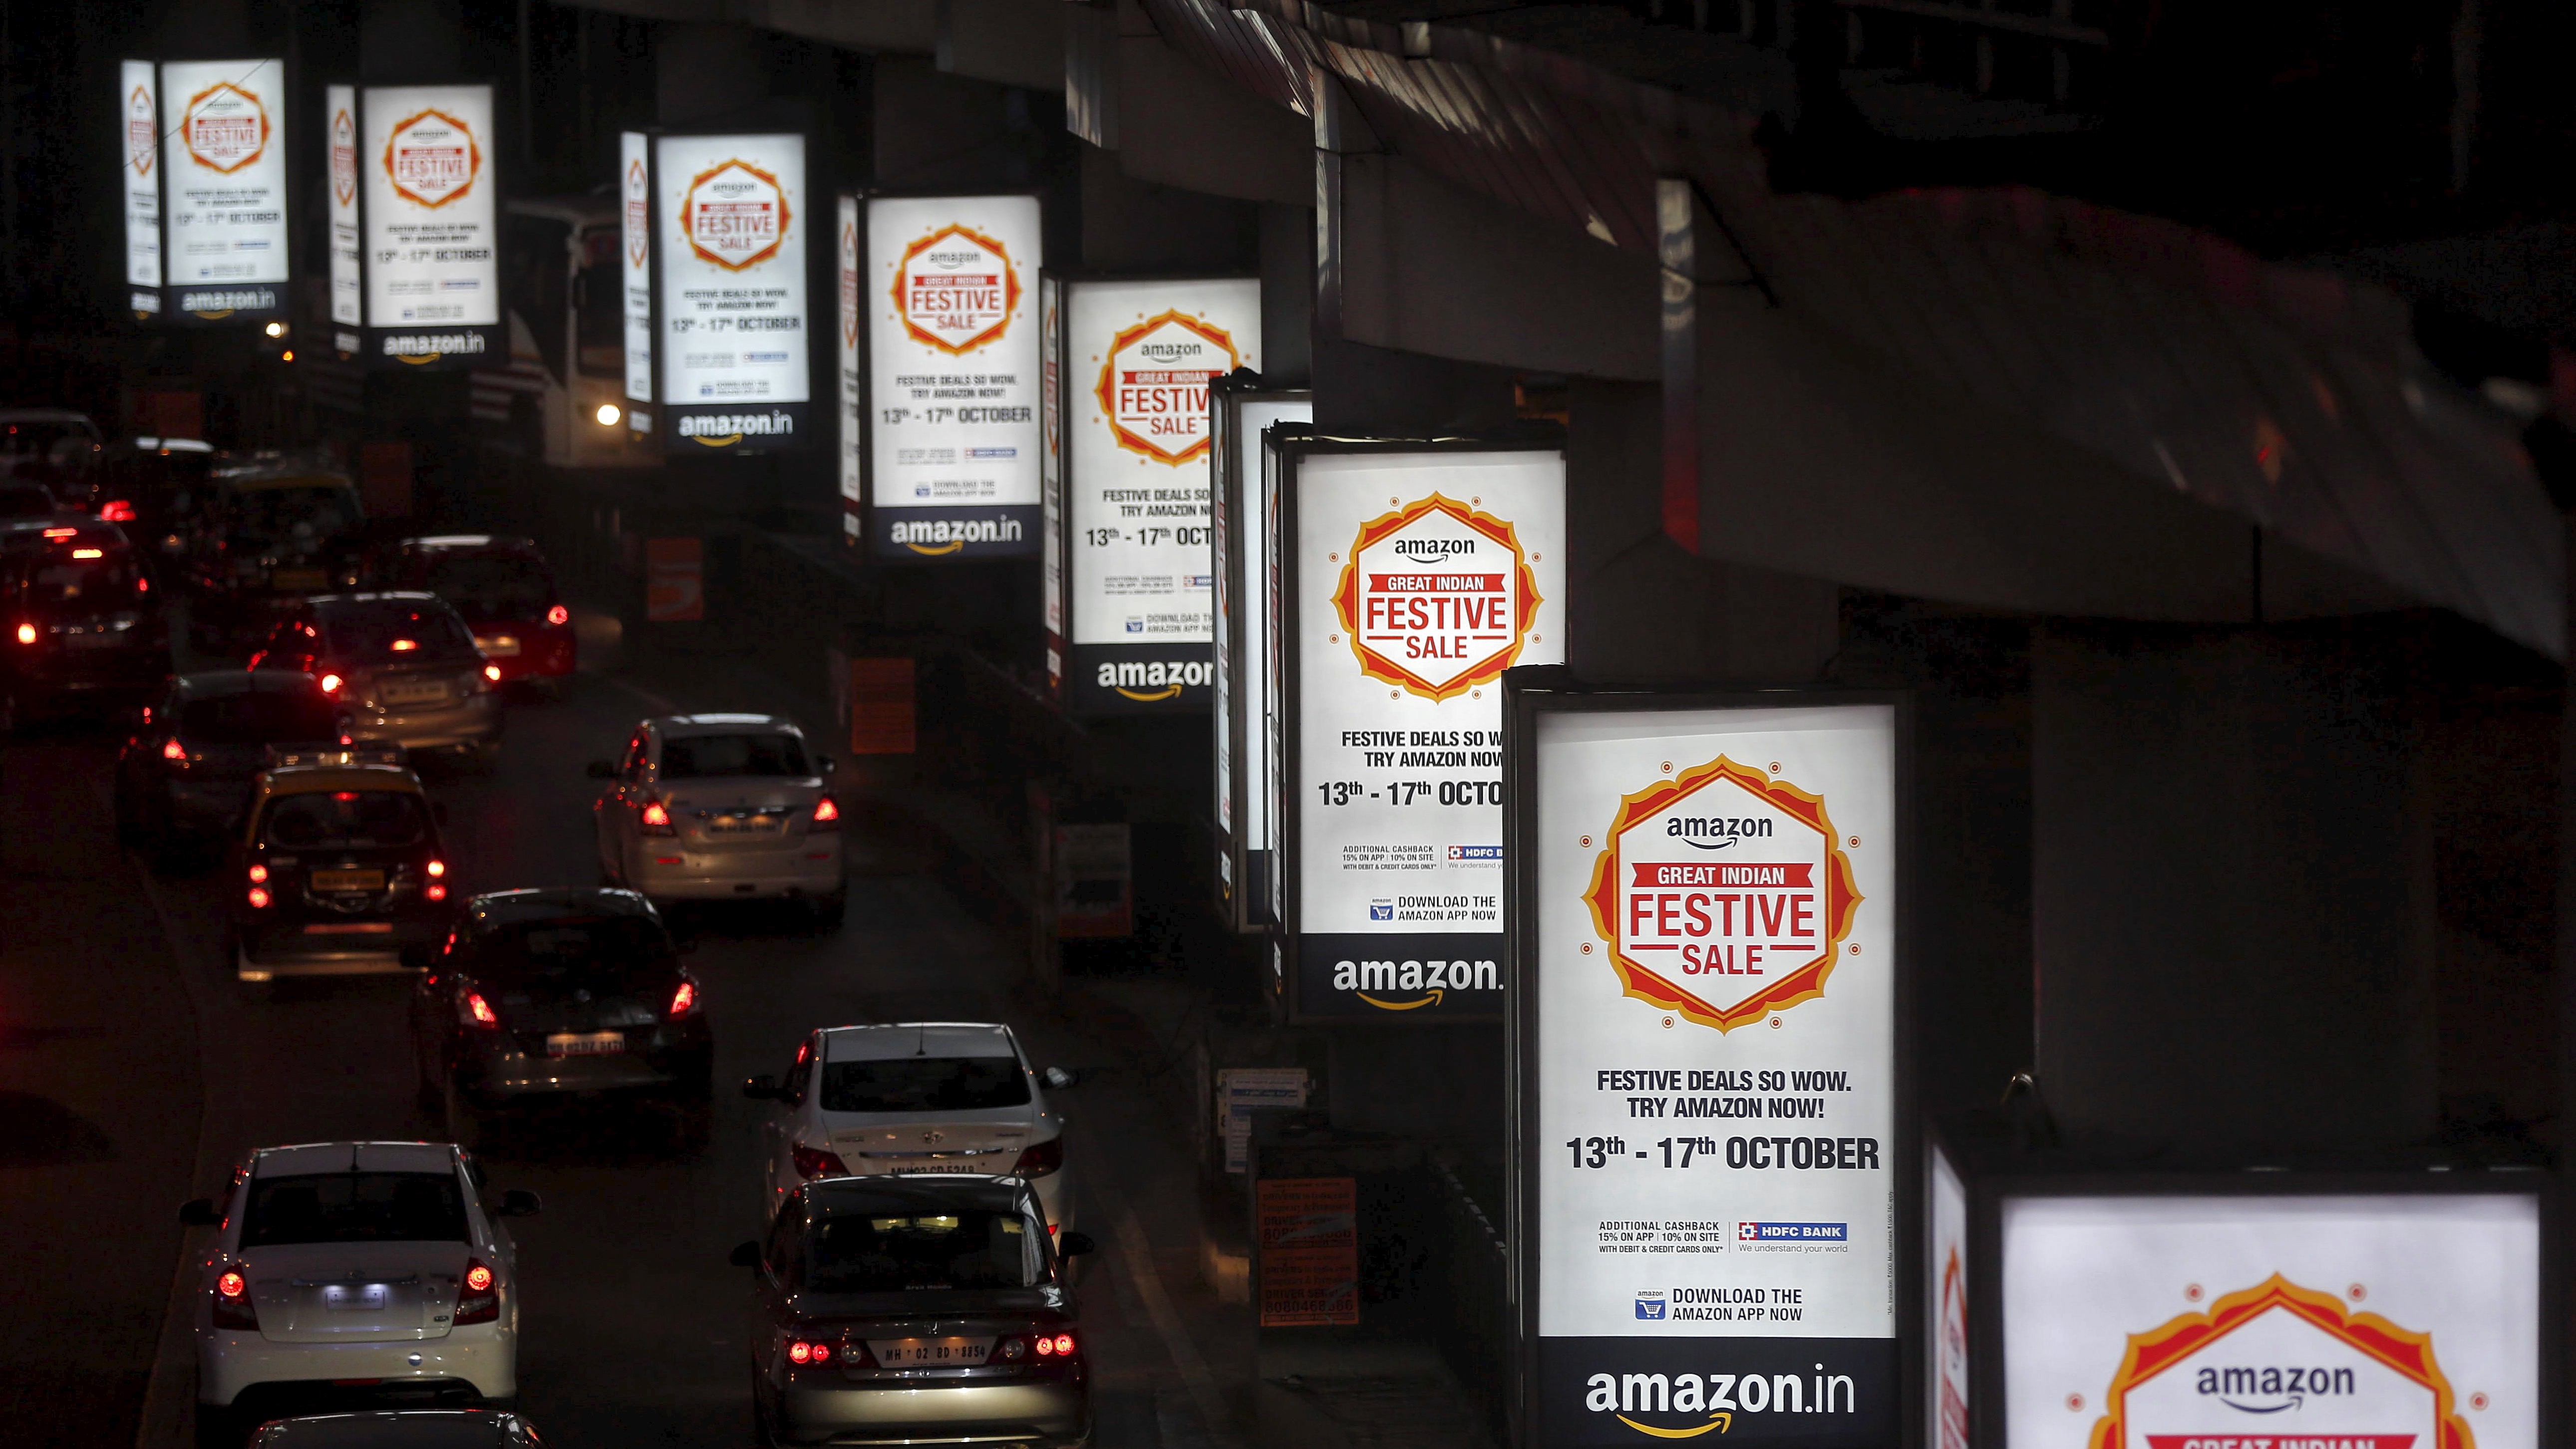 Traffic moves on a road past advertisements of Indian online marketplace Amazon, in Mumbai, India, October 15, 2015. Amazon.com could emerge as the biggest winner from one of India's most important festive - and shopping - seasons that began this week, after the e-tailer offered steep discounts, swift delivery and even gold bars to grab market share. The month-long festive season culminates around November 10 in Diwali, or the Festival of Lights, but the first nine days are considered an especially auspicious time to make big purchases. Picture taken October 15, 2015.   REUTERS/Shailesh Andrade - RTS4PFR